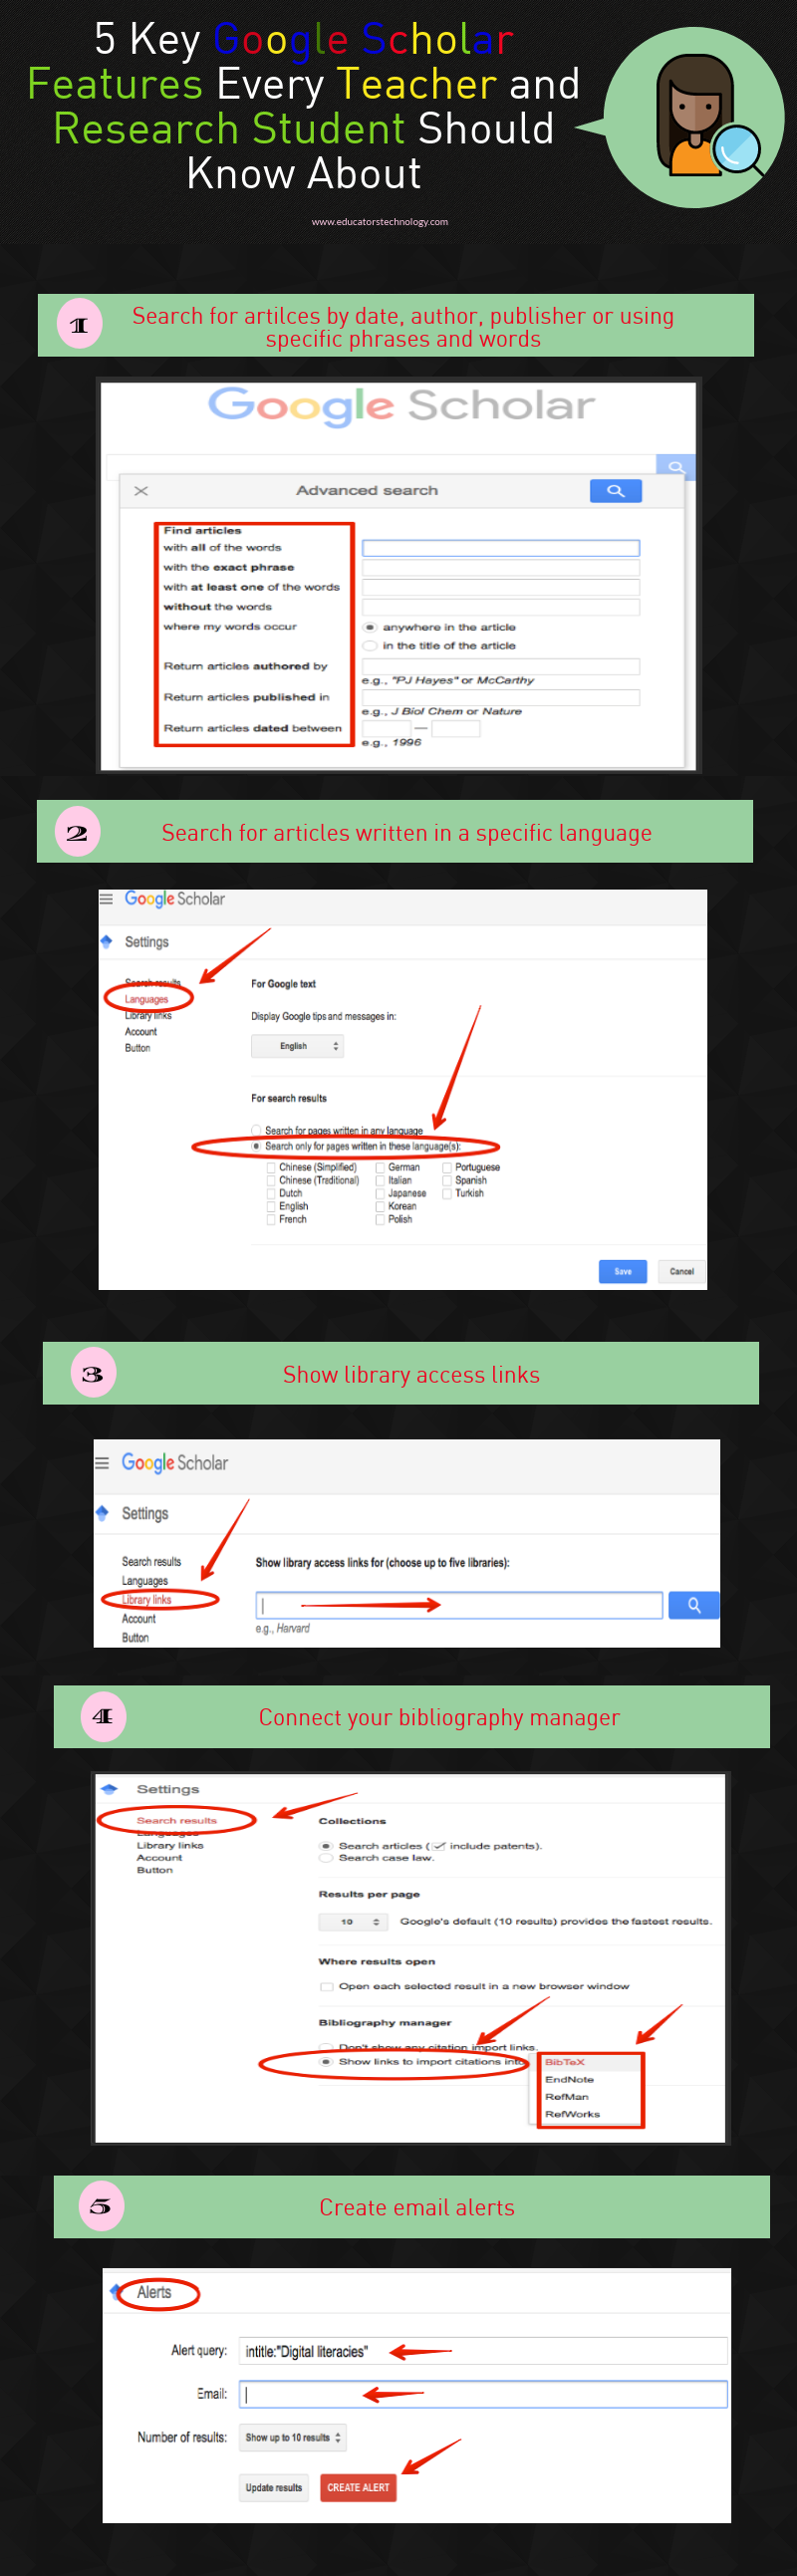 5 Key Google Scholar Features Every Teacher and Research Student Should Know About